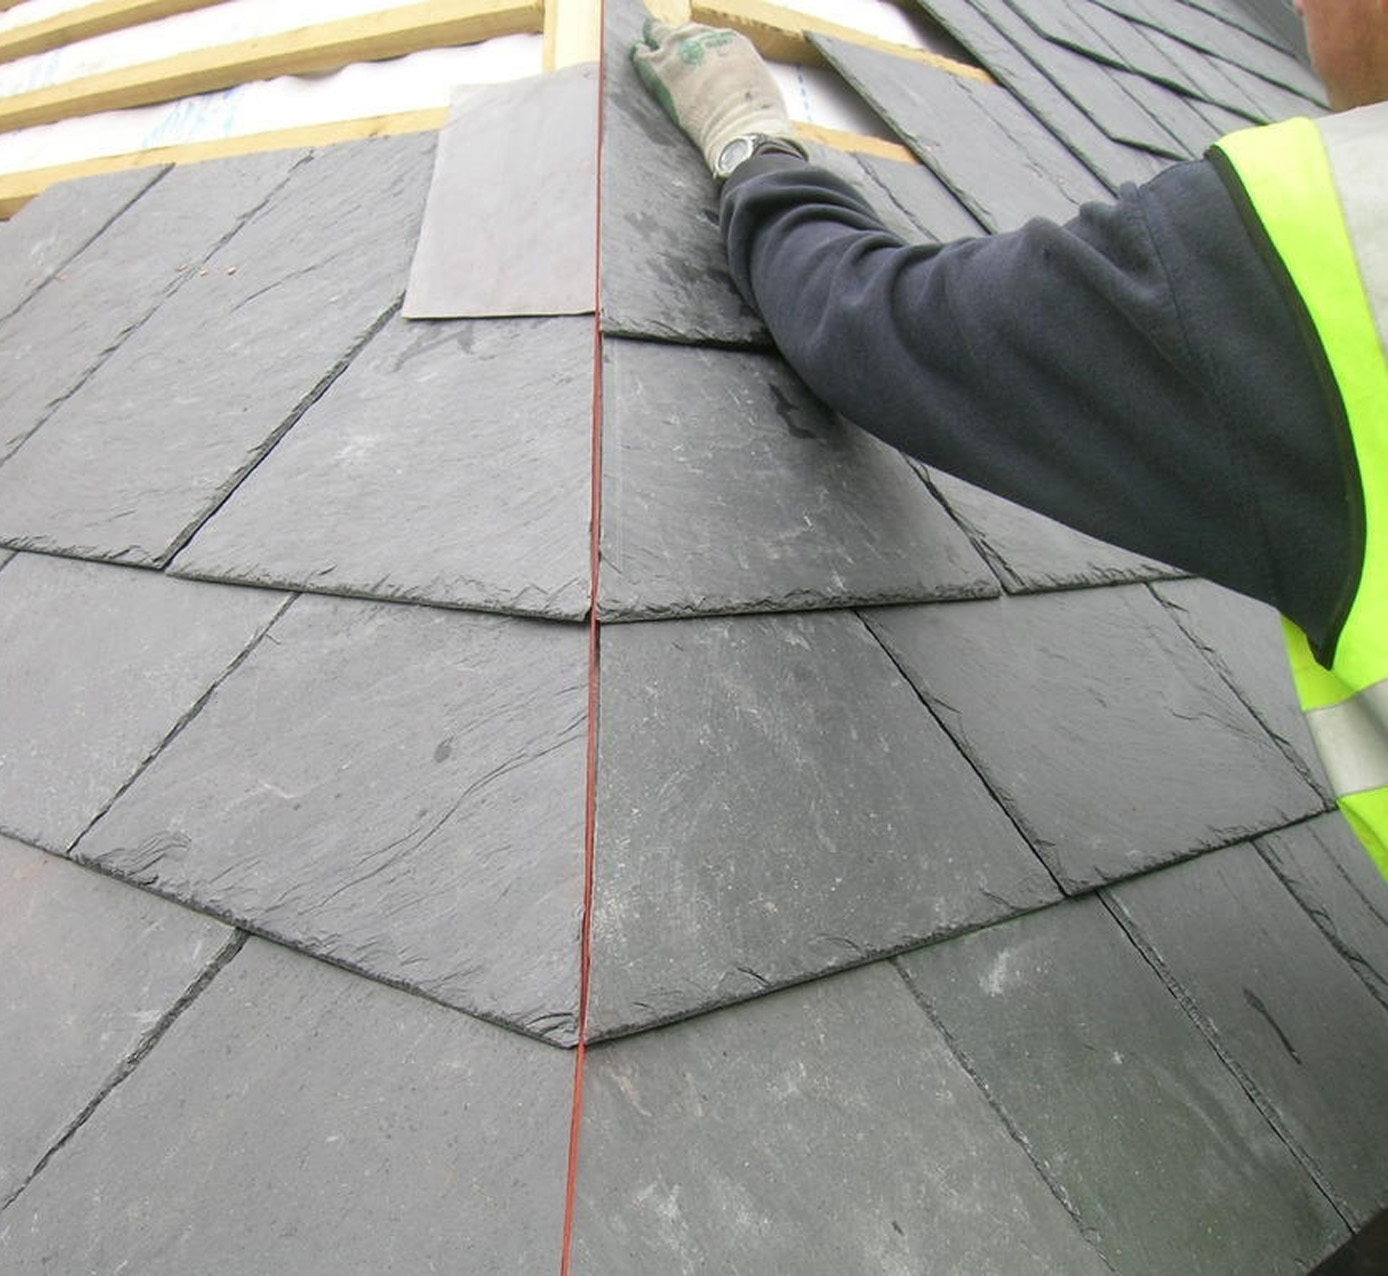 The roofer lays the thickest slates on the lowest pitches and thinnest on upper pitches